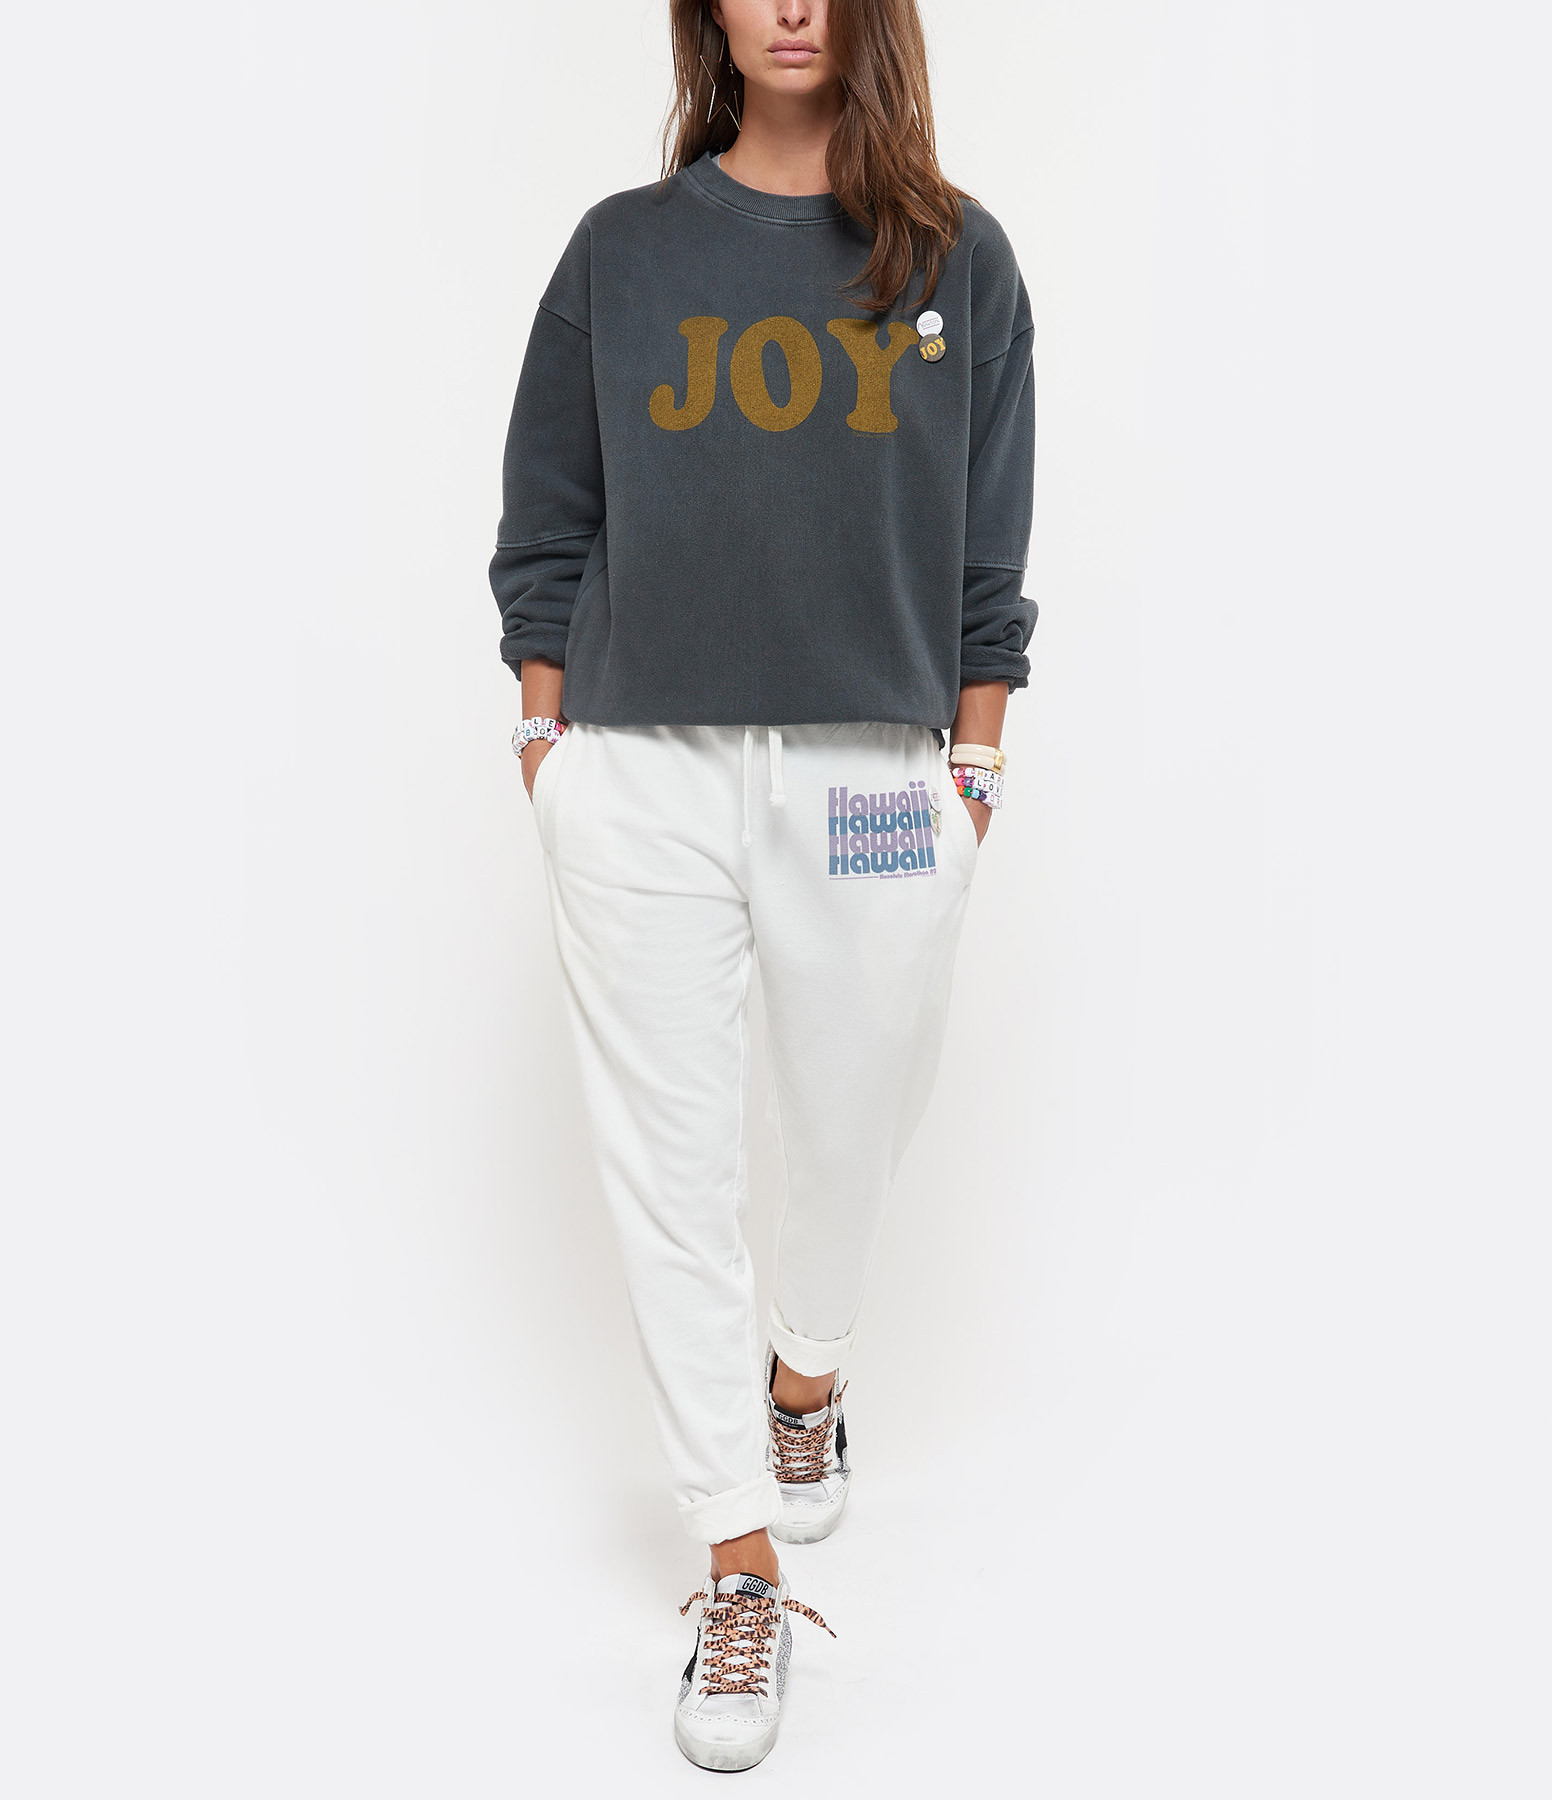 NEWTONE - Sweatshirt Roller Joy Coton Pepper